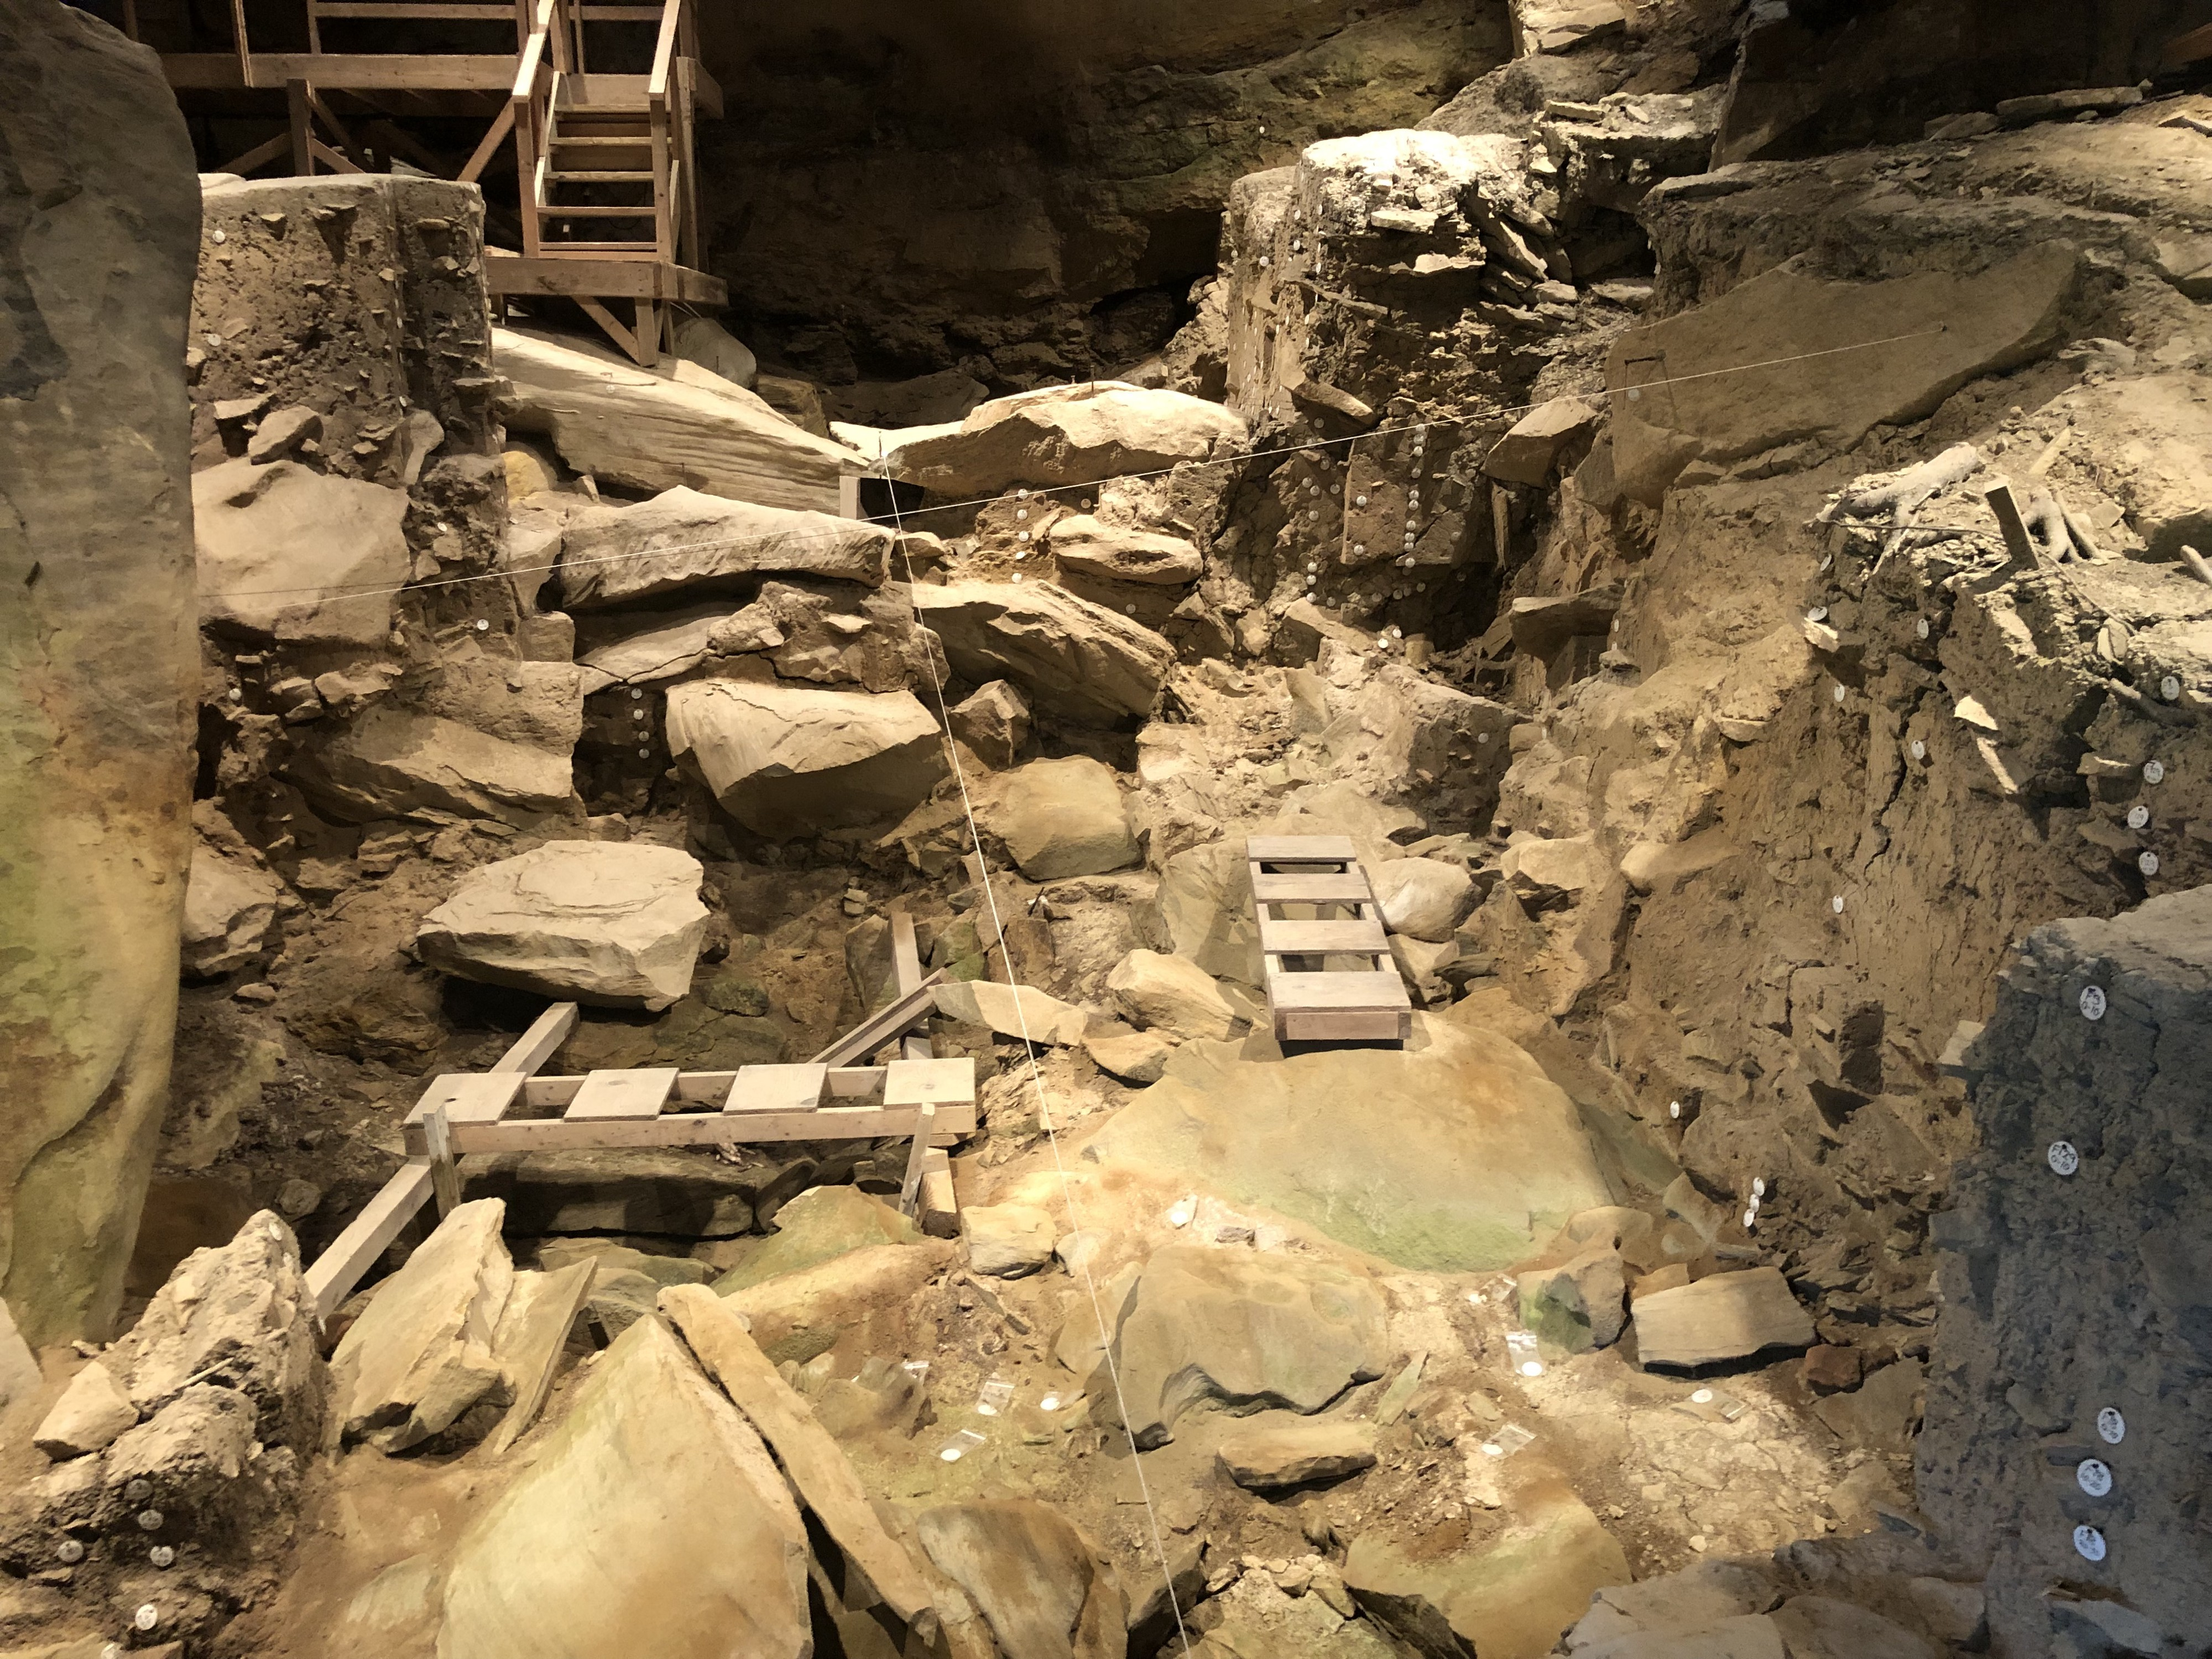 The interior of the Meadowcroft Rockshelter in Avella, Pennsylvania. This site features an archaeological dig preserved as it was left after the dig was completed in the late 1970s. Small tags dot the stones indicating strata. Wooden ladders and walkways are present, allowing for access to harder to get to portions of the dig site. Photo by Mike Luoma.